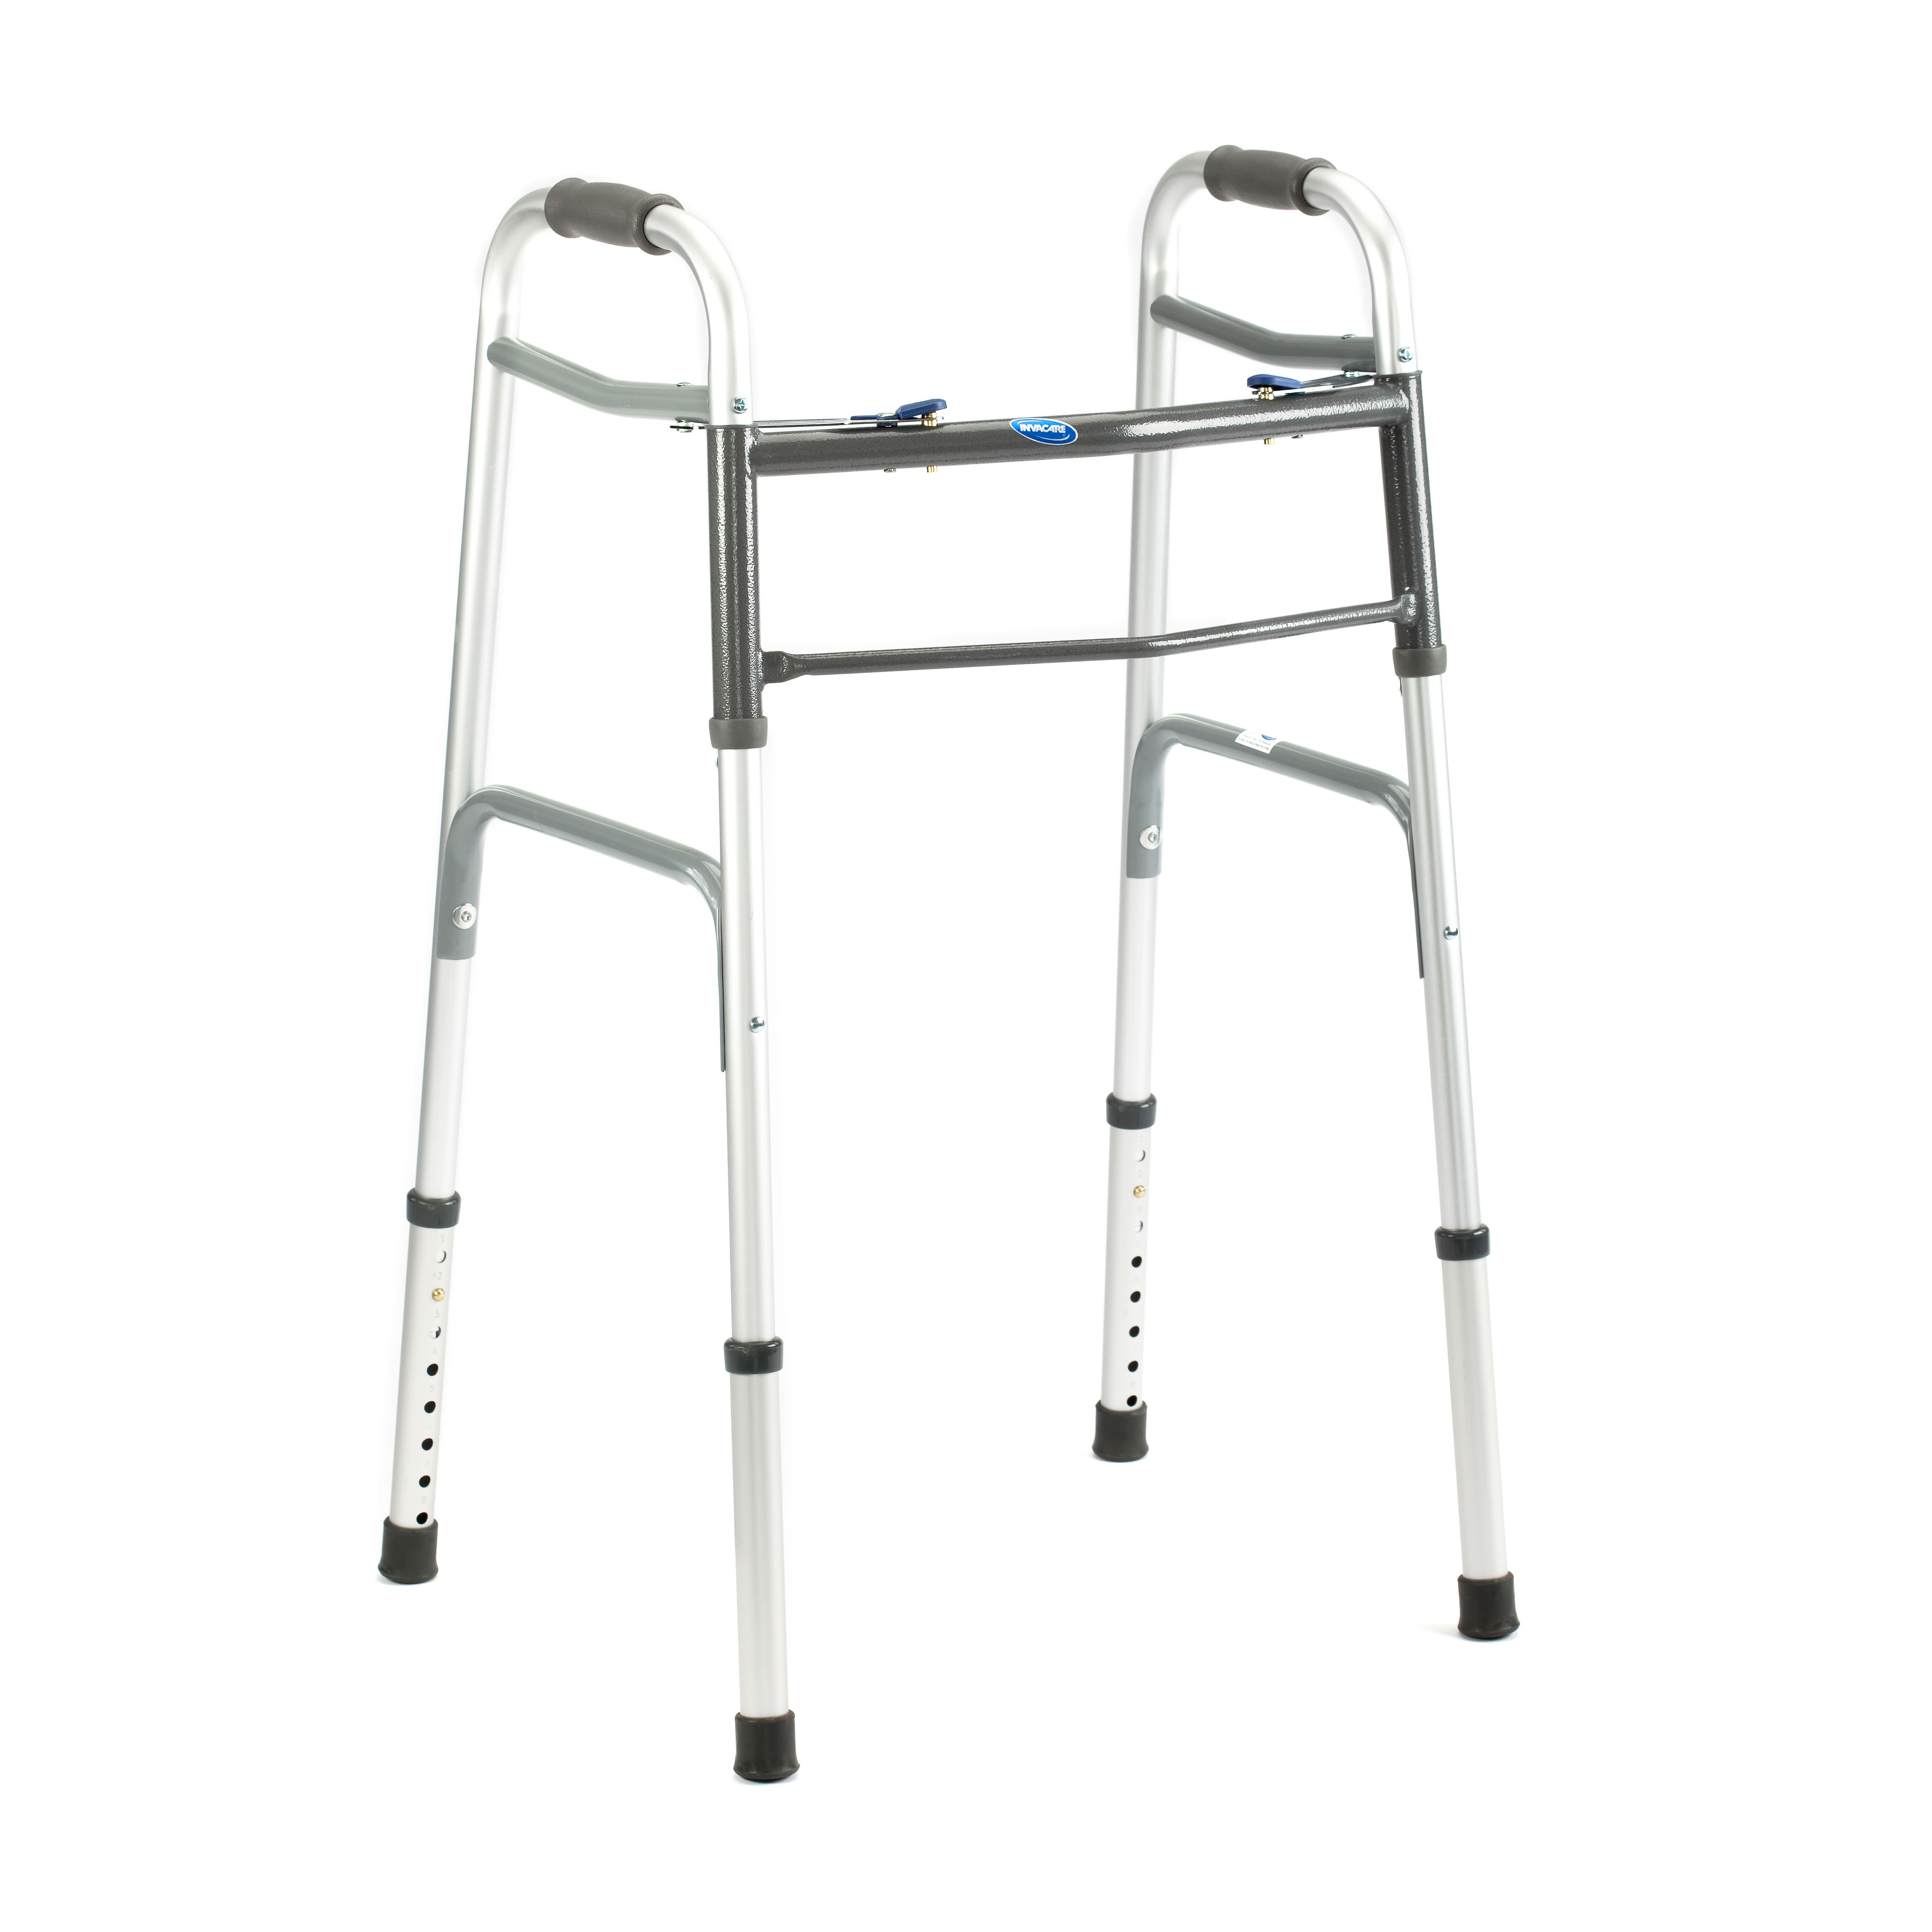 Invacare Dual Blue-Release Walker (6240-A / 6240-5F) Parts